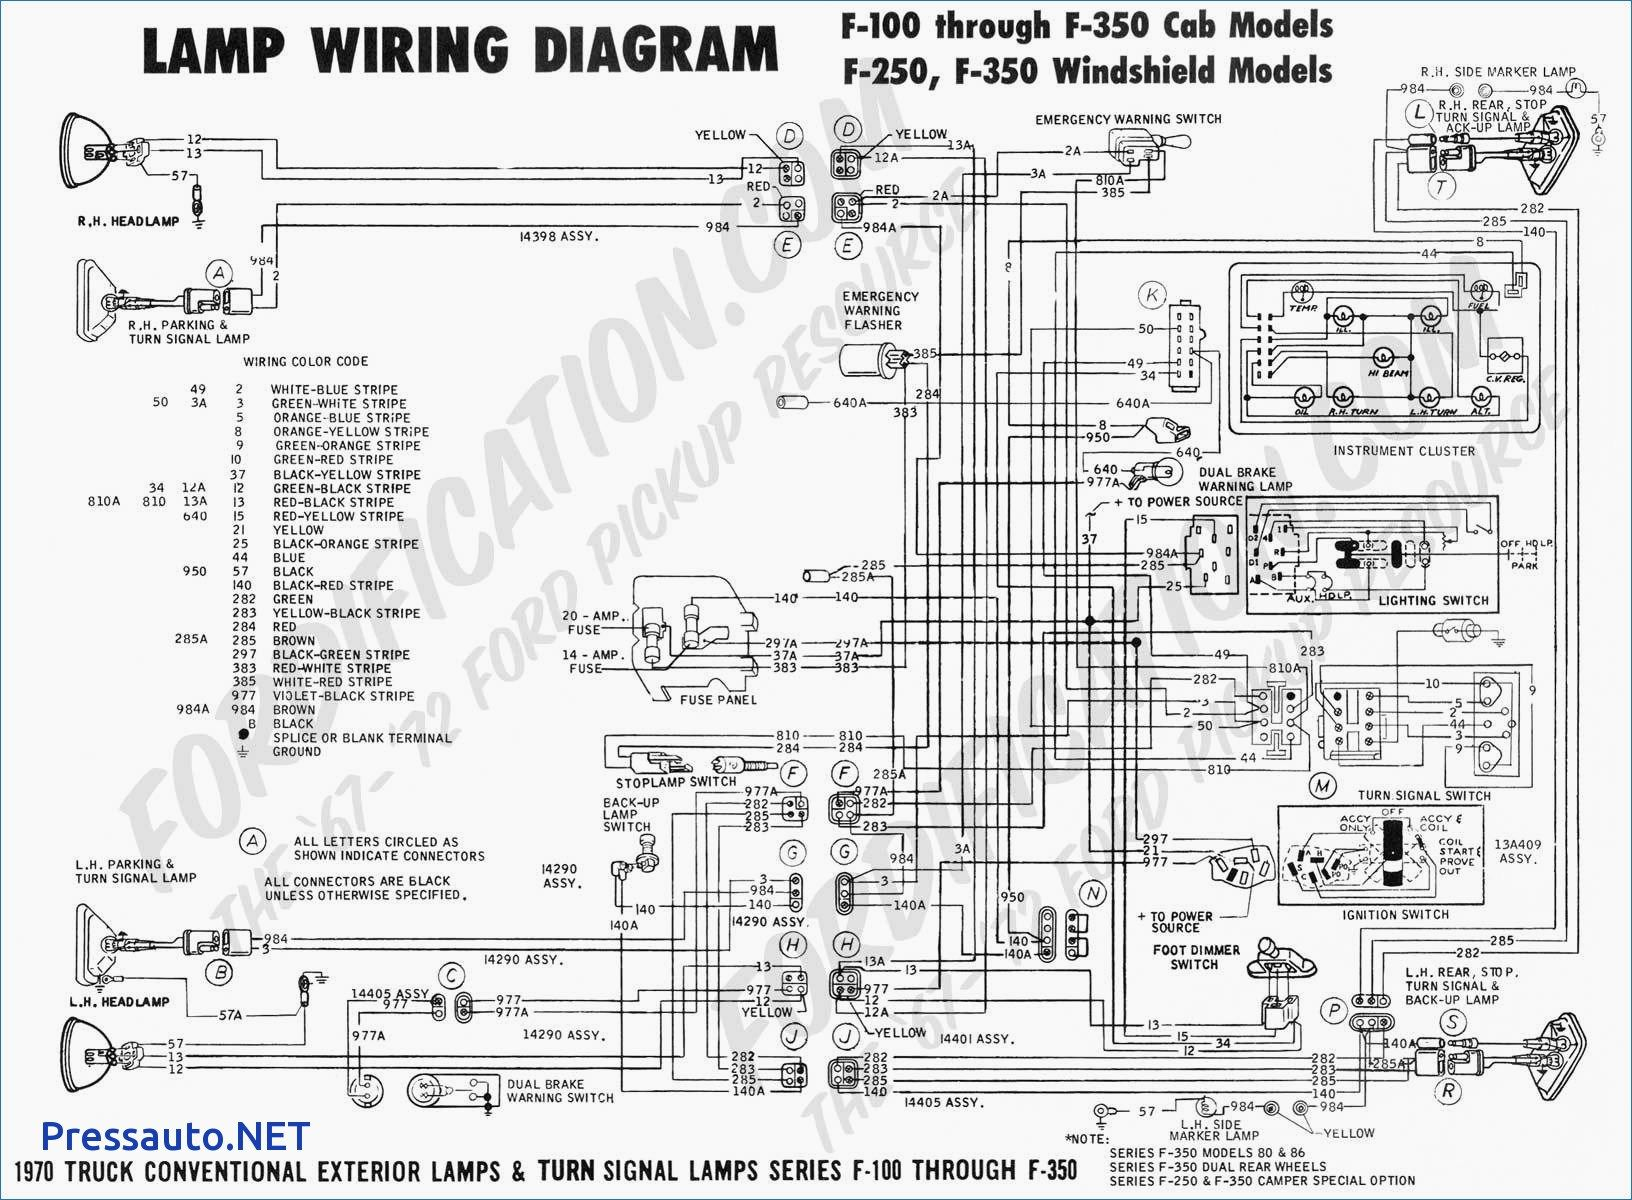 2002 f350 turn signal wiring diagram diagrams schematics inside ford f250 |  electrical diagram, trailer wiring diagram, electrical wiring diagram  pinterest